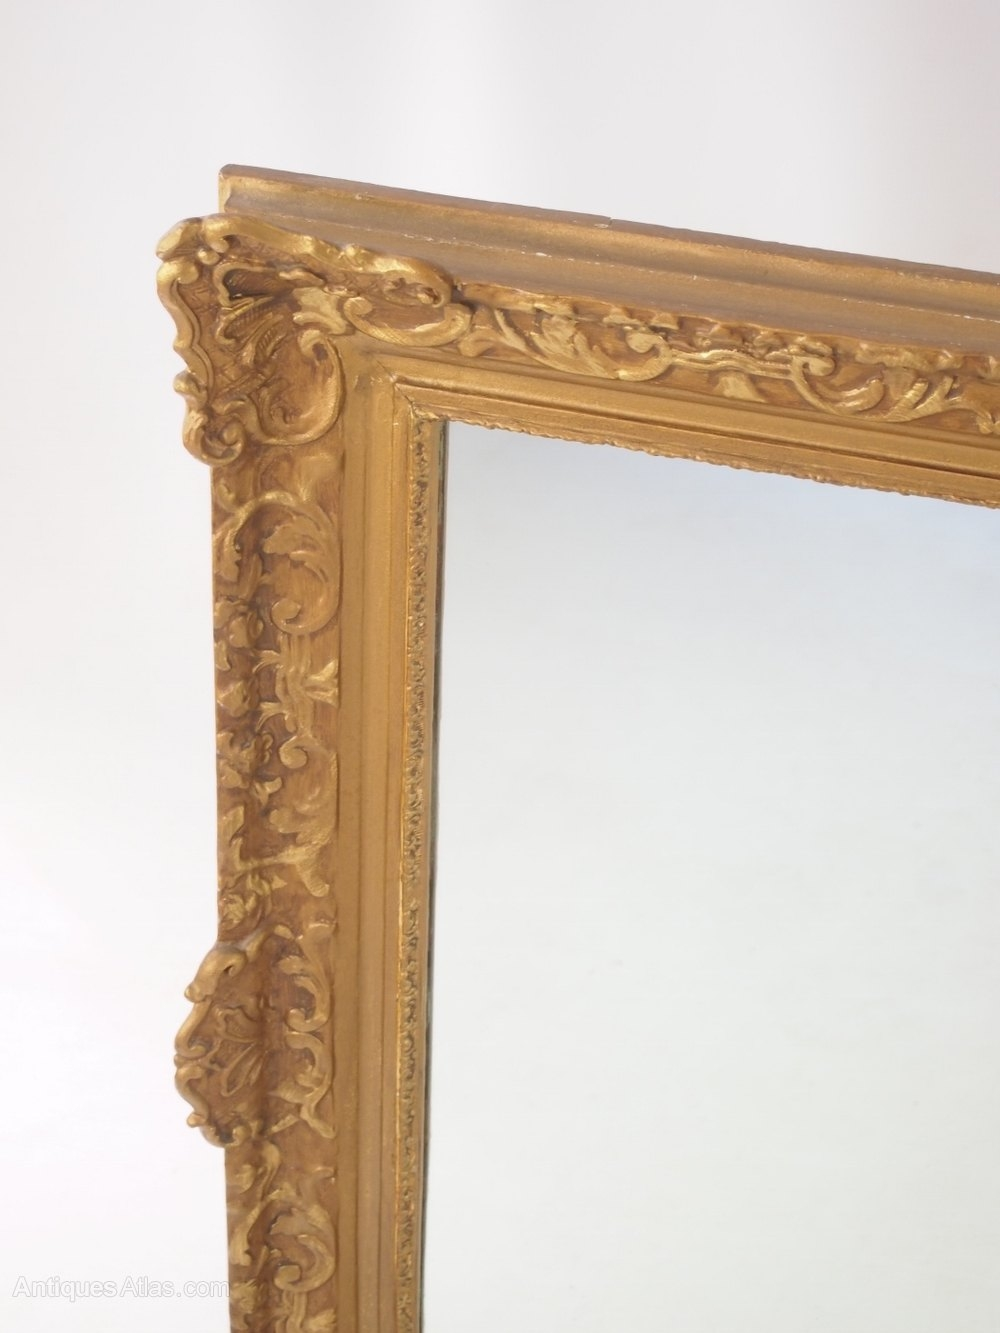 Antiques Atlas Large Gilt Framed Wall Mirror Pertaining To Large Gilt Framed Mirror (Image 5 of 15)